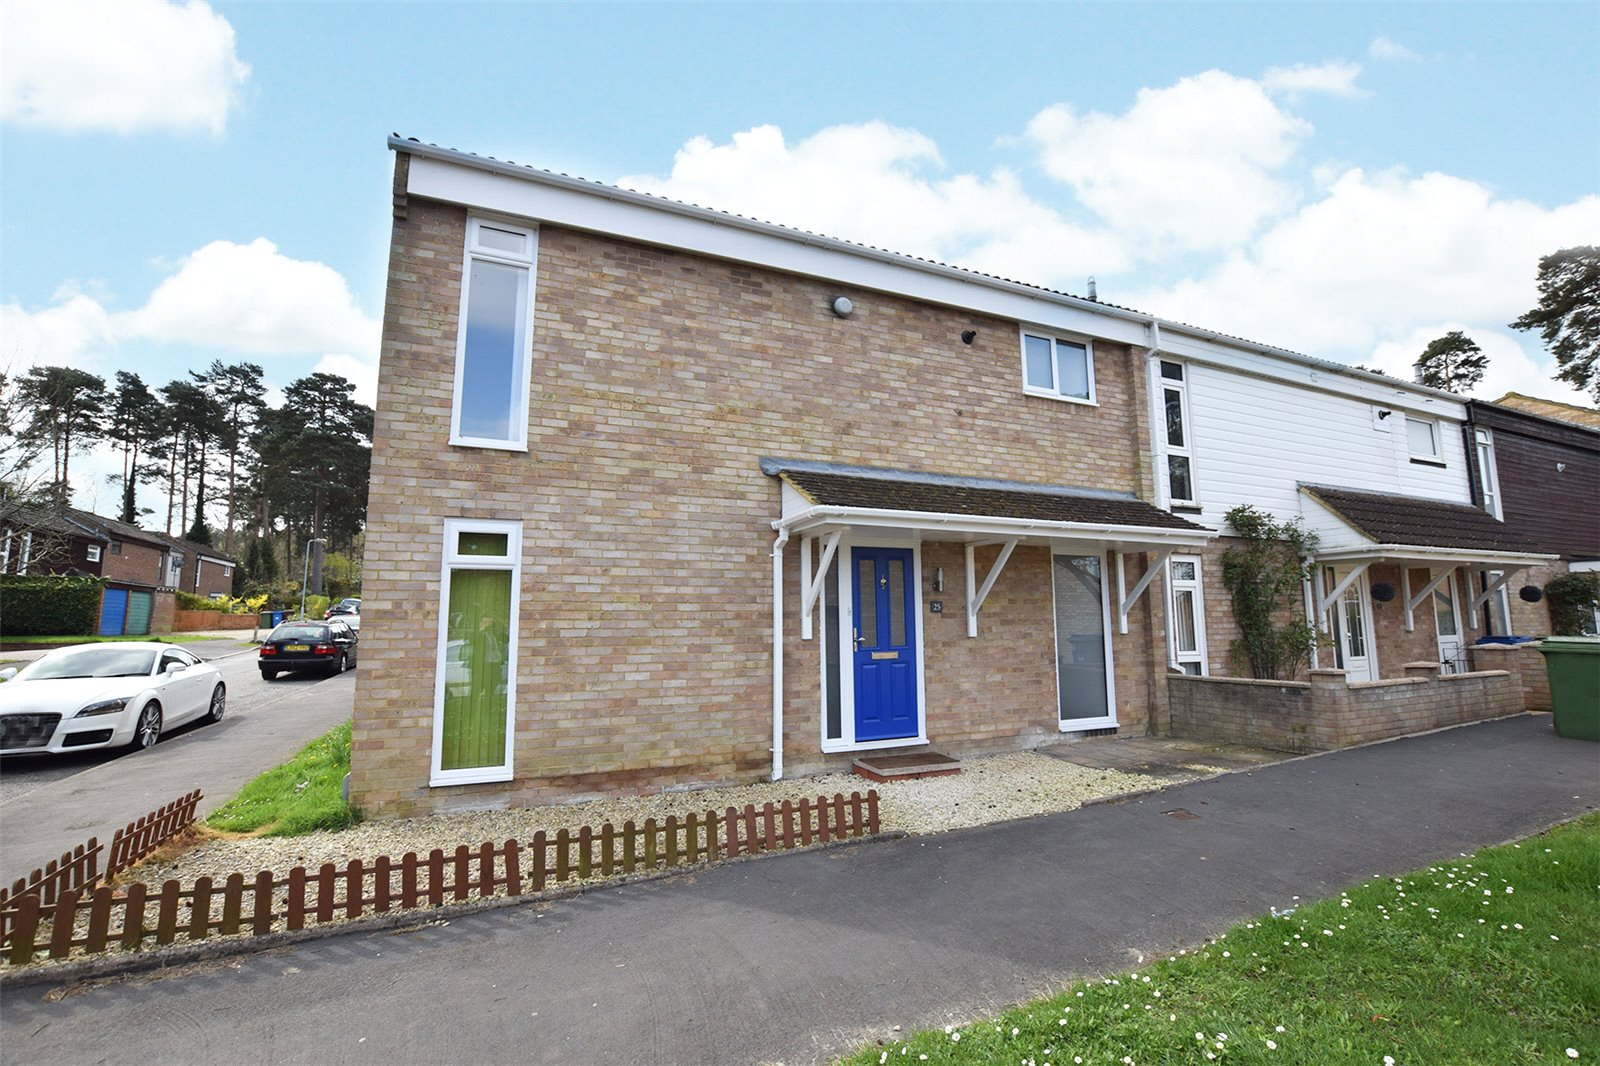 3 Bedrooms End Of Terrace House for sale in Oakengates, Bracknell, Berkshire, RG12